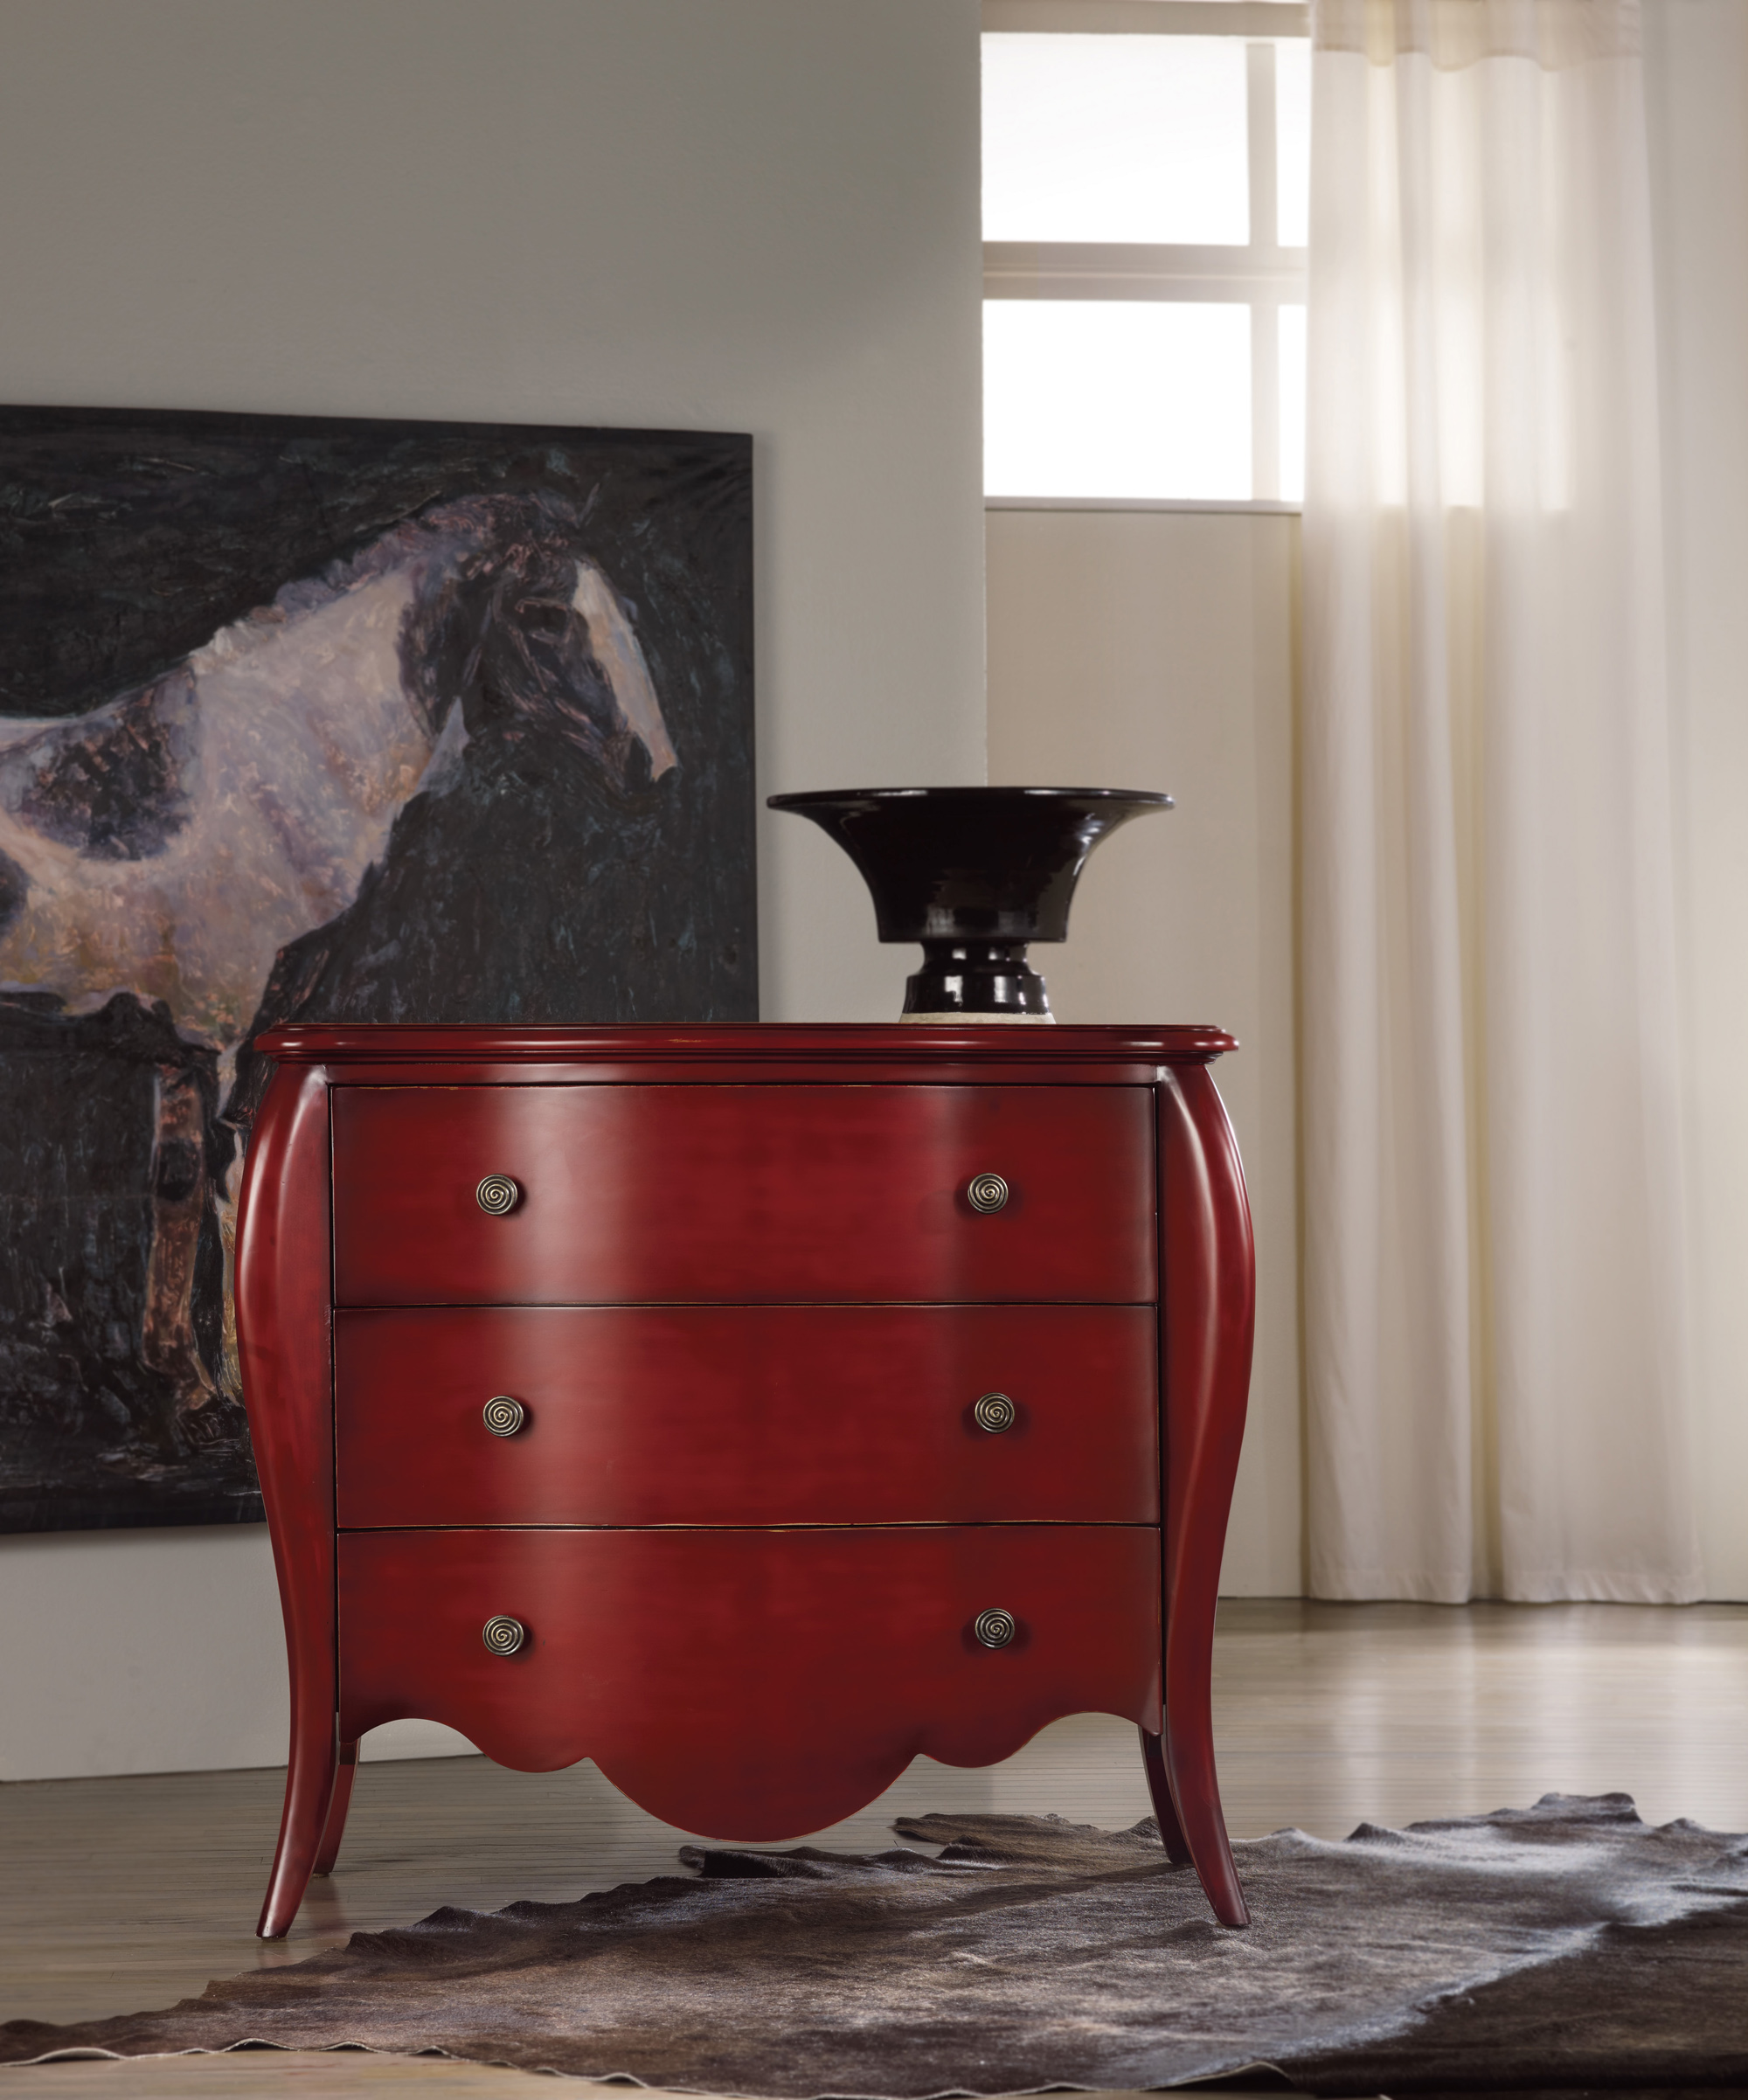 edgy furniture statement caliente chest dare to go bold edgy with your color scheme hooker furniture